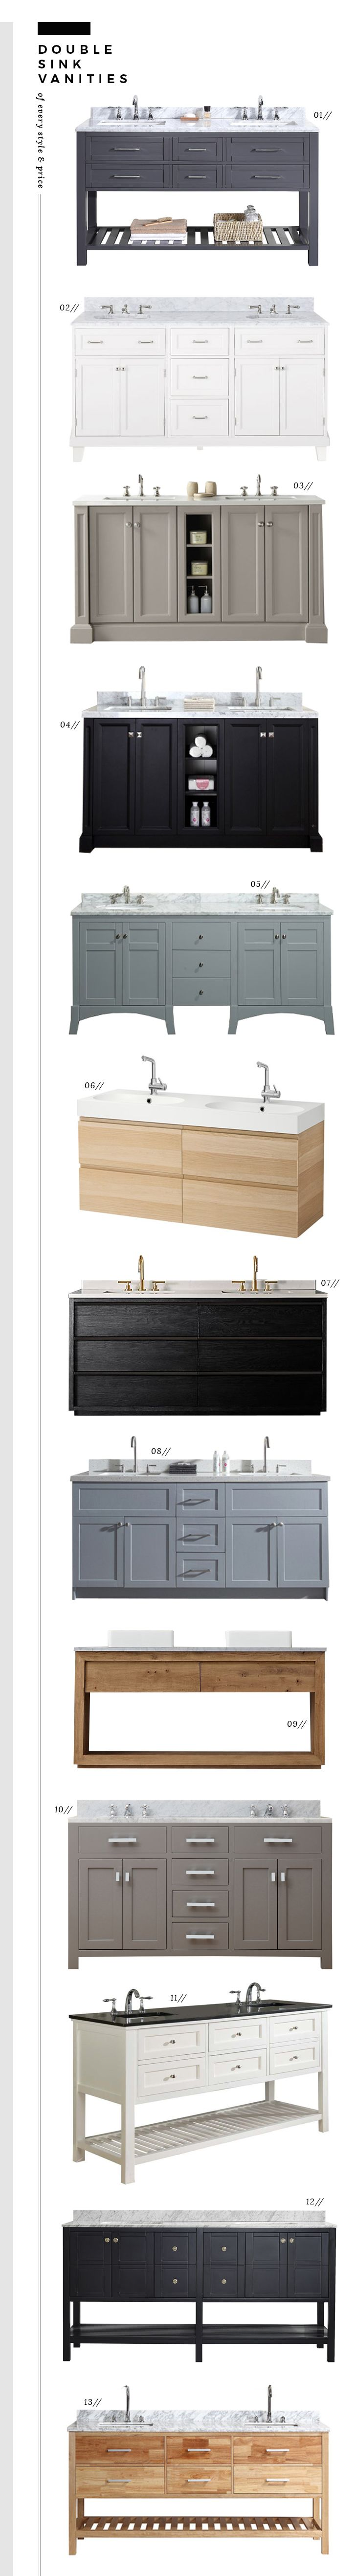 Ready Made Bathroom Vanities Tap The Link Now To See Where World S Leading Interior Designers Purchase Their Beautifully Crafted Hand Picked Kitchen